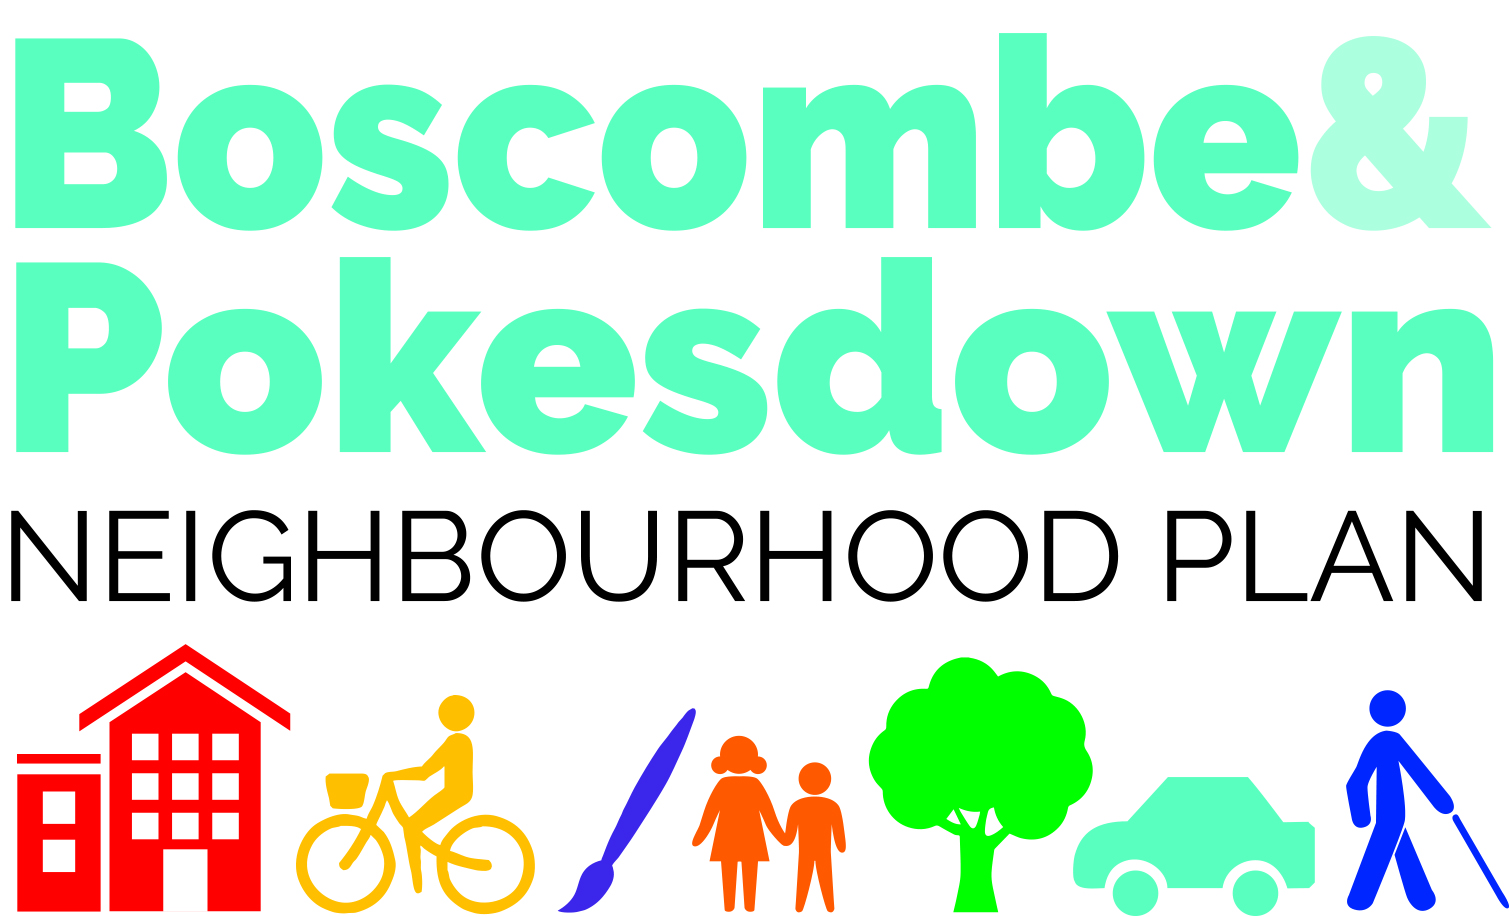 Boscombe Pokesdown Neighbourhood Plan